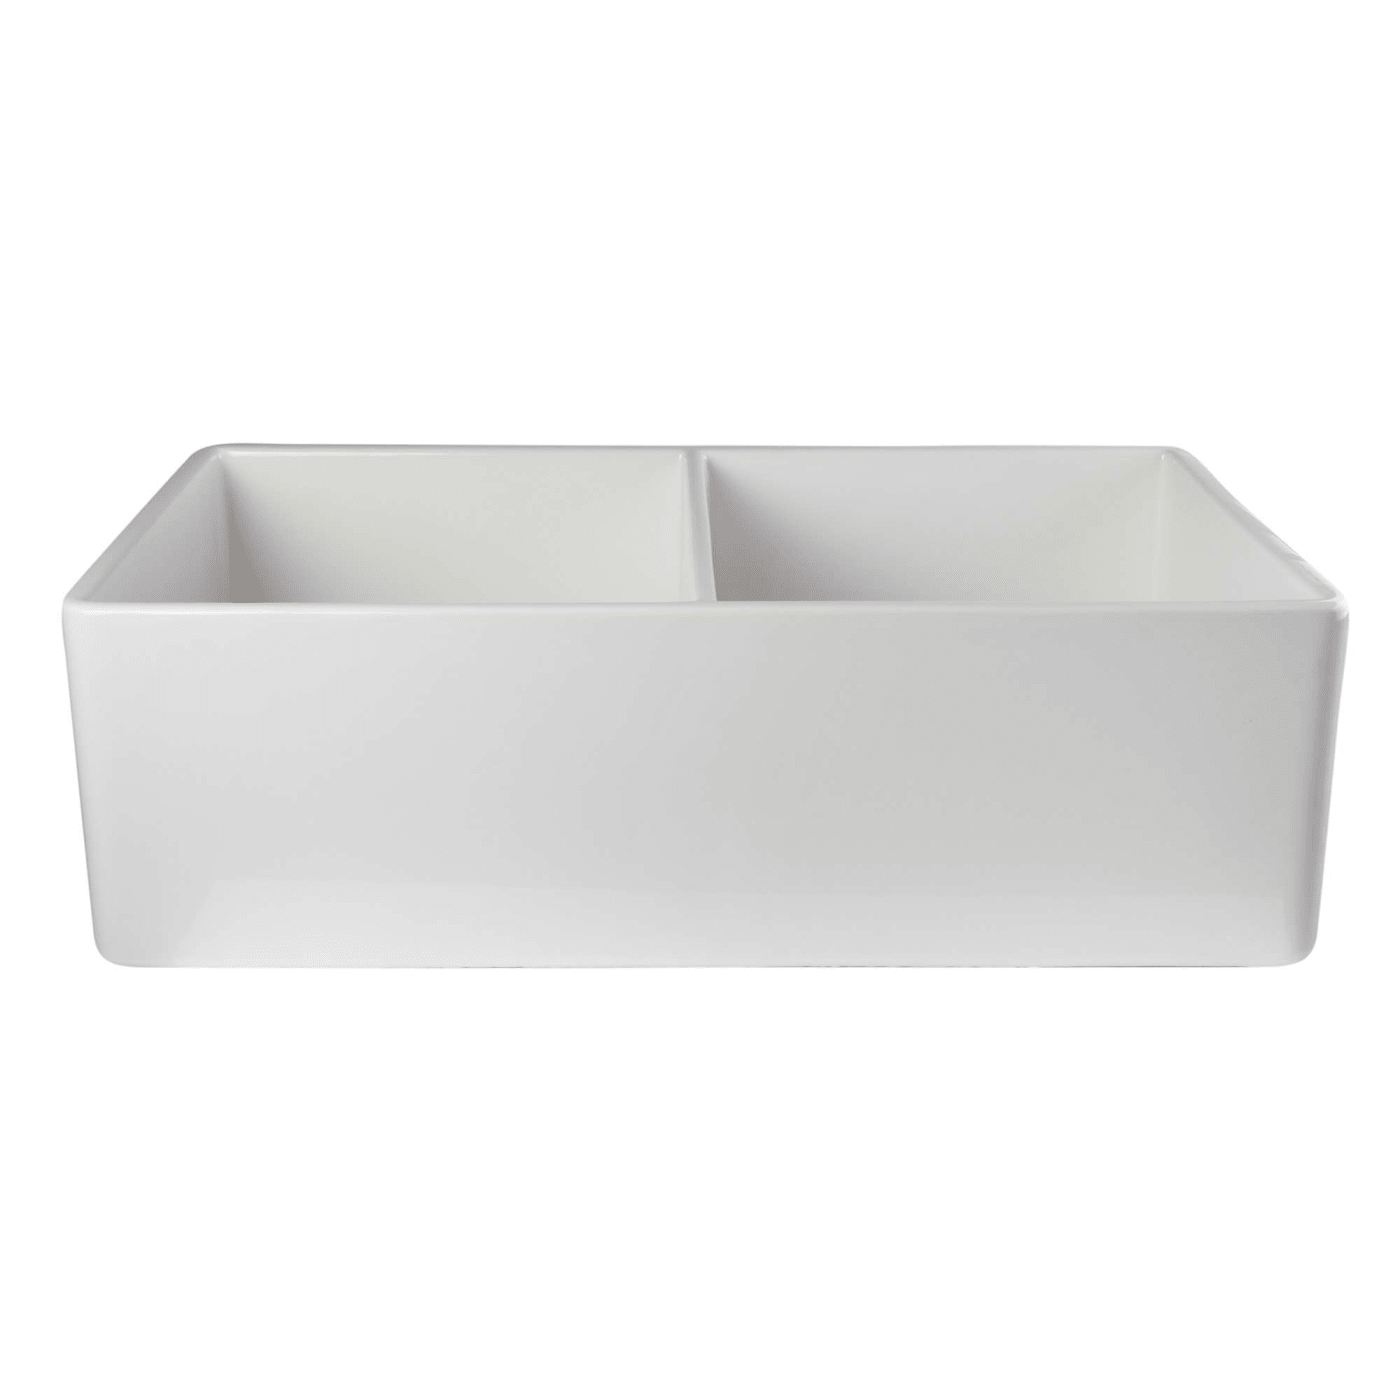 White  Smooth Double Bowl Fireclay Farmhouse Kitchen Sink Alfi